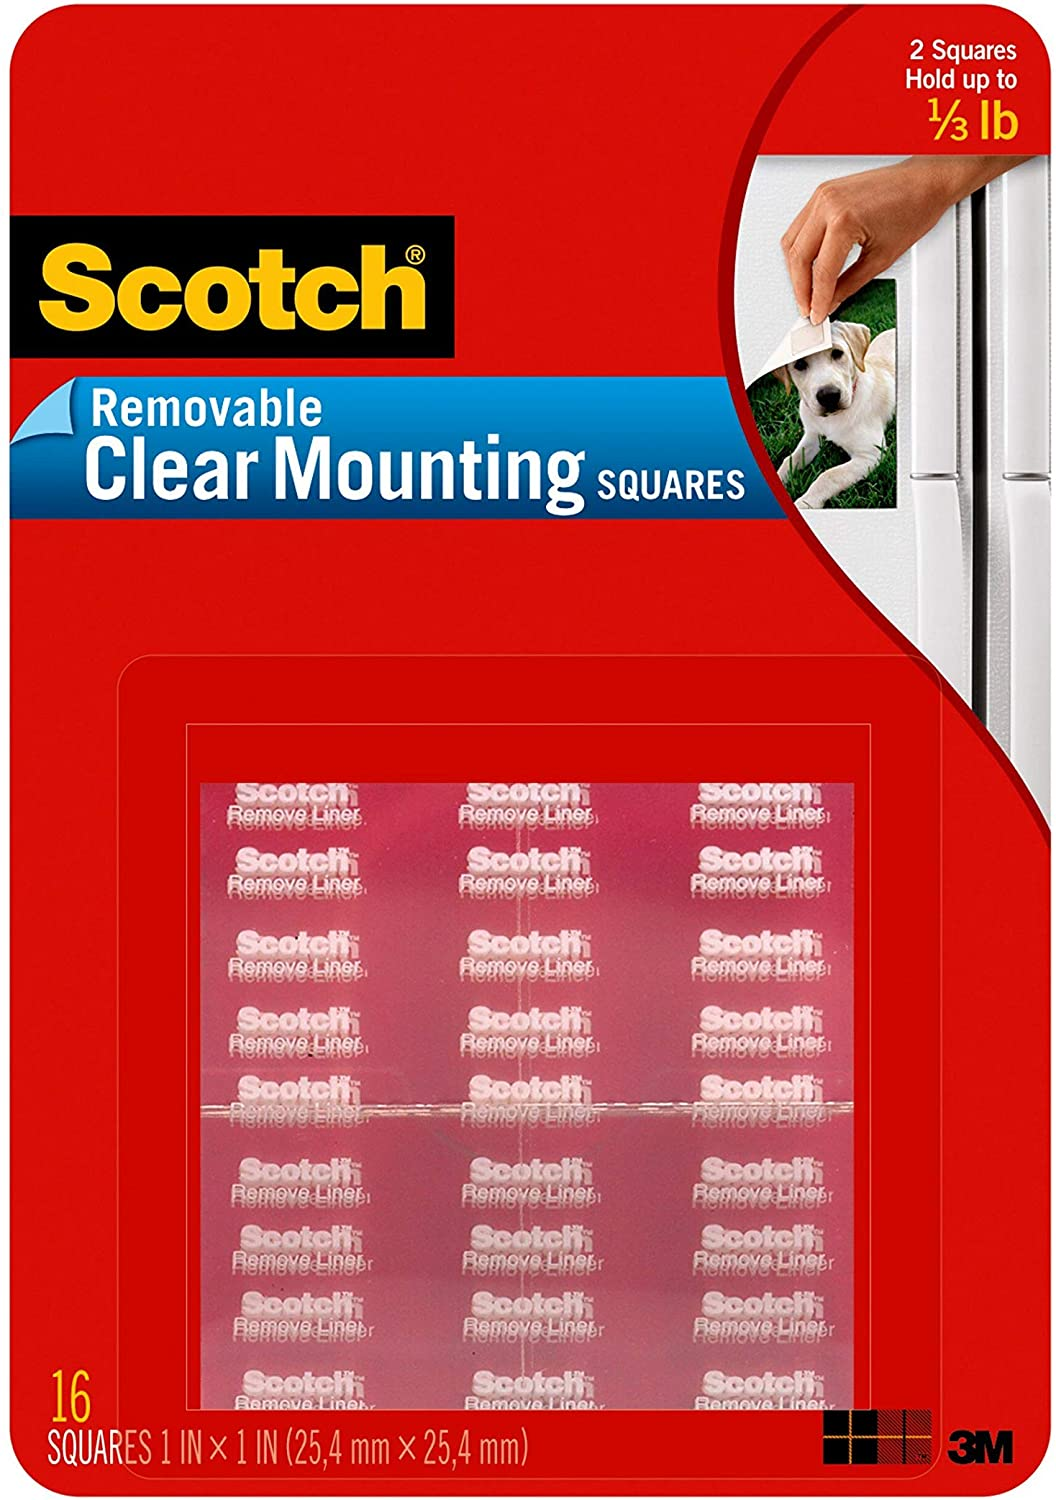 Removable Clear Mounting Squares